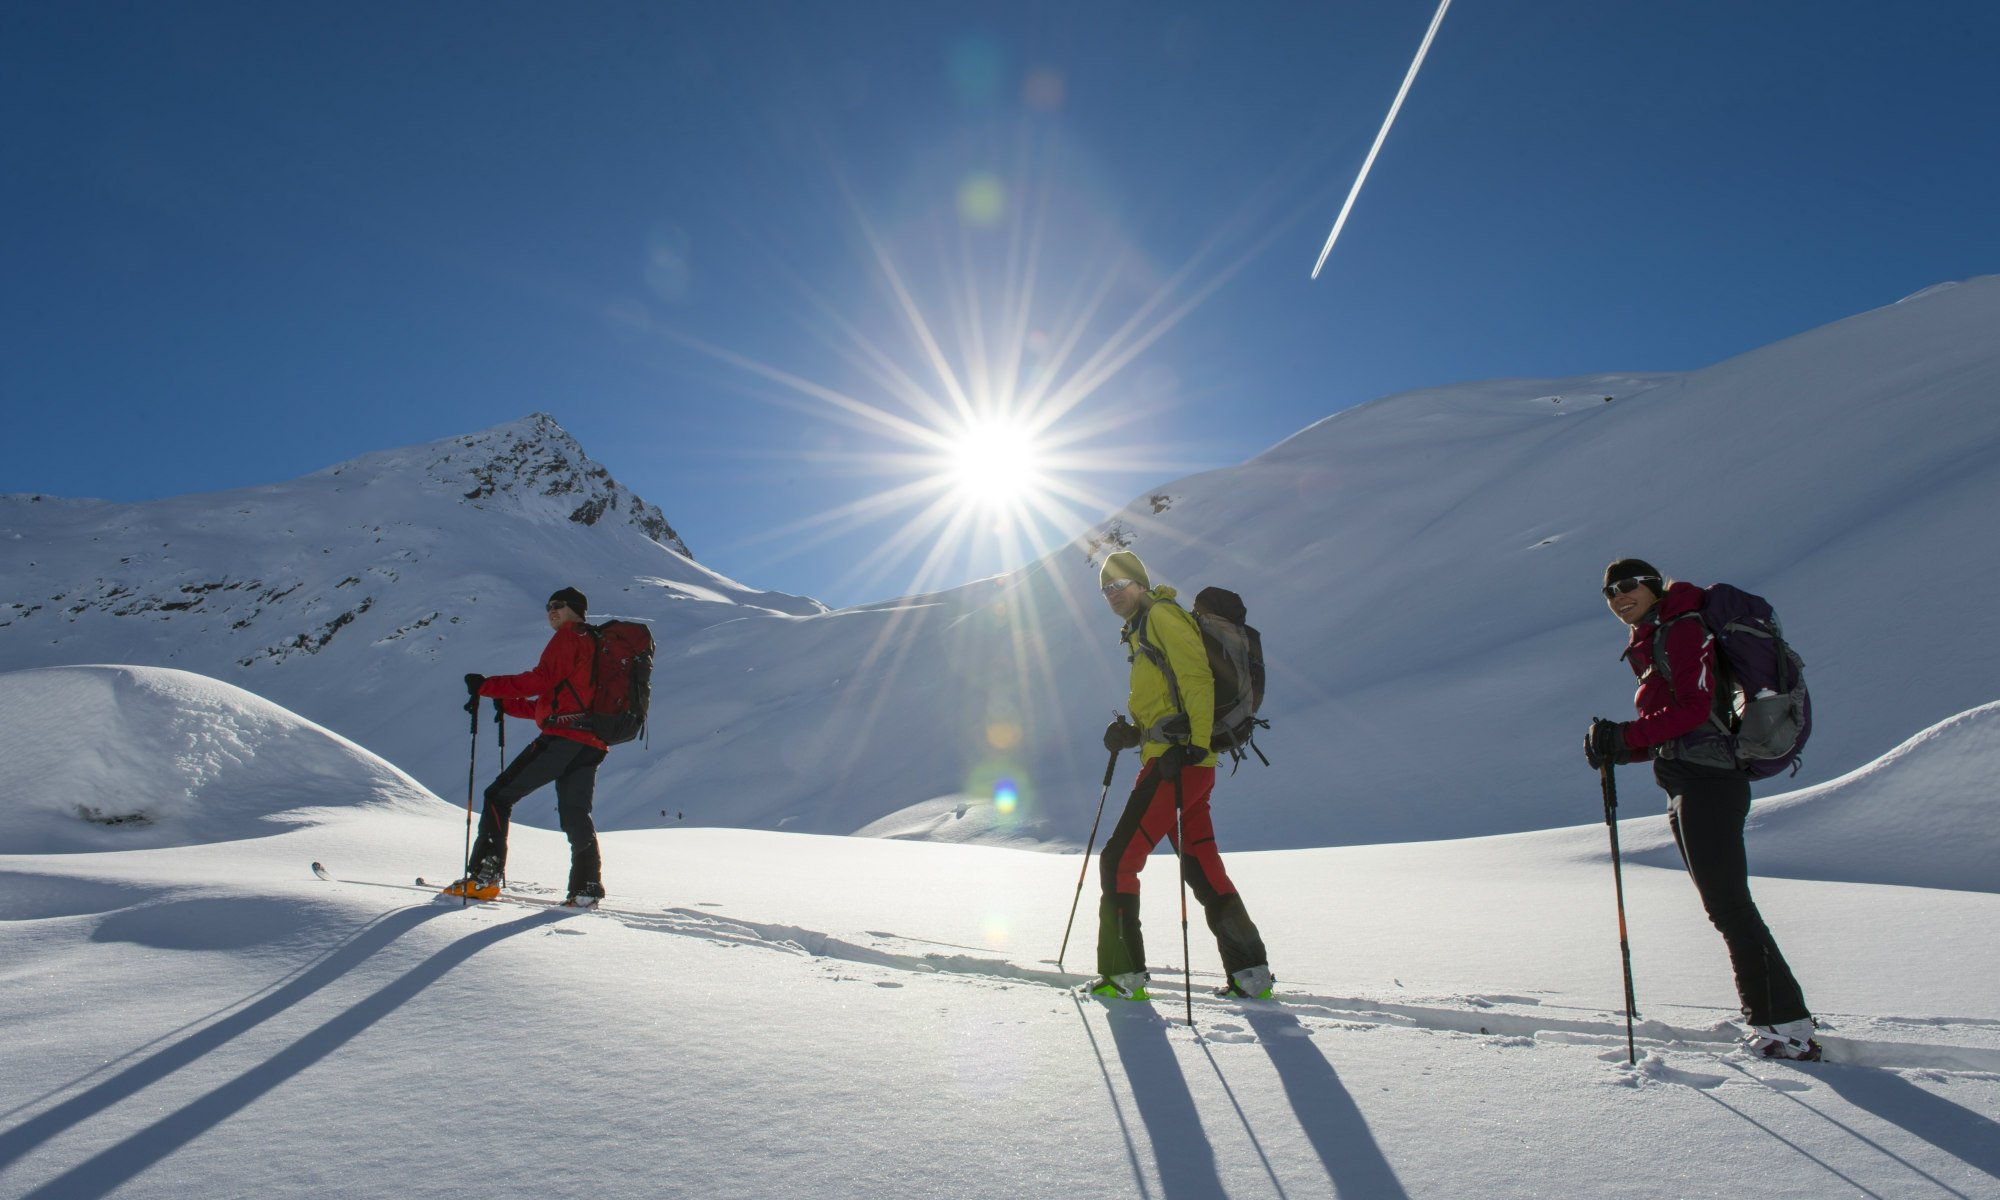 3 people on a ski tour are walking through a snow-covered environment.